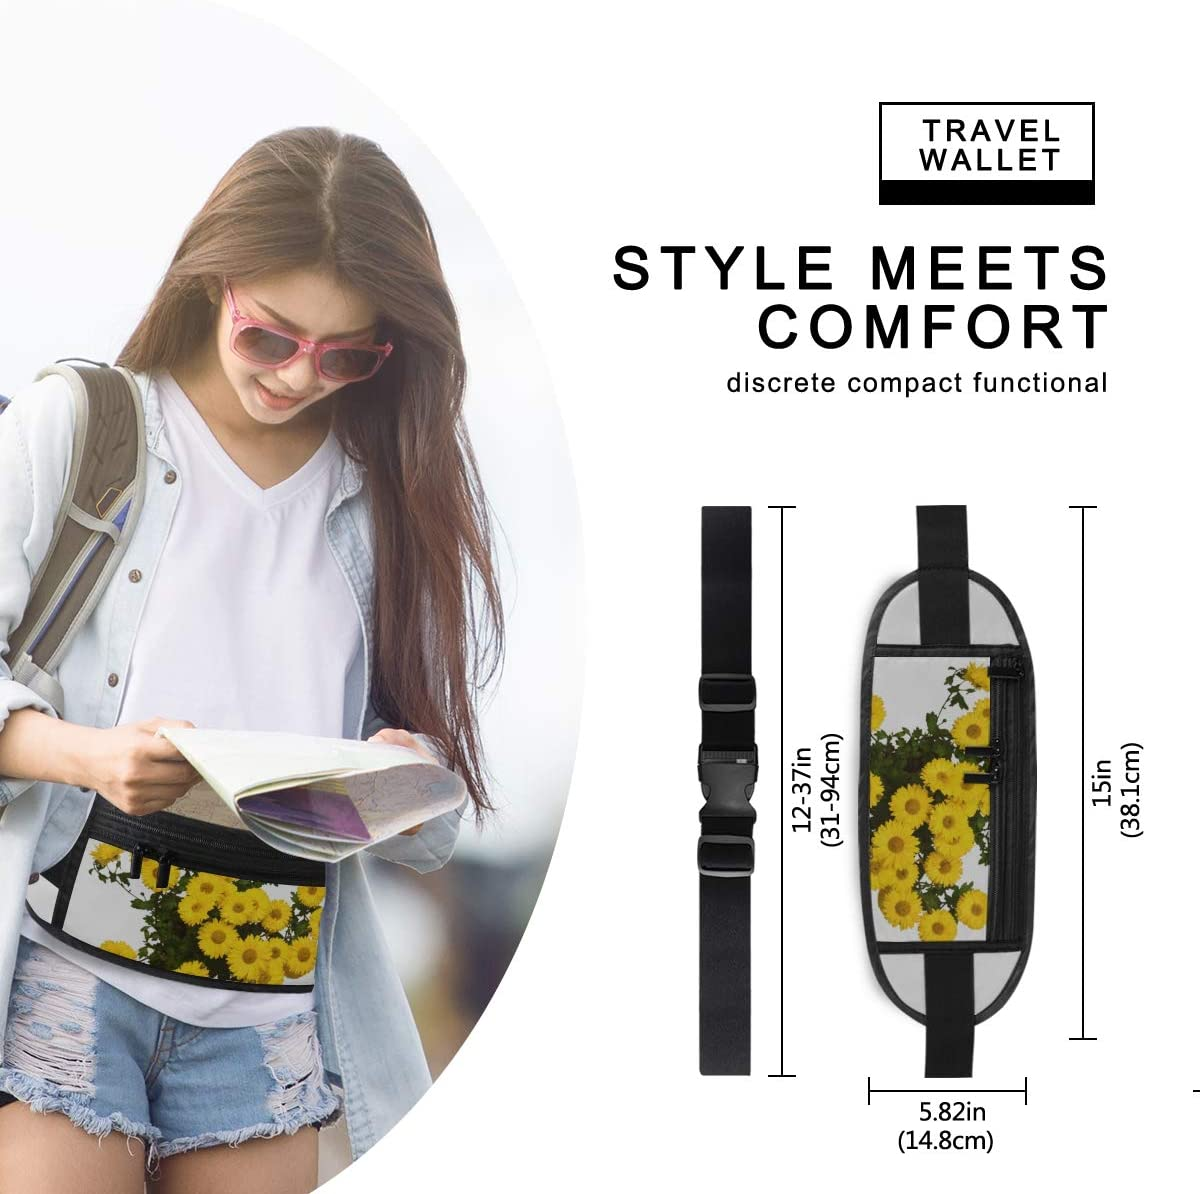 Chrysanthemum Flowers Yellow Autumn Pot Isolated Running Lumbar Pack For Travel Outdoor Sports Travel Waist Pack,travel Pocket With Adjustable Belt